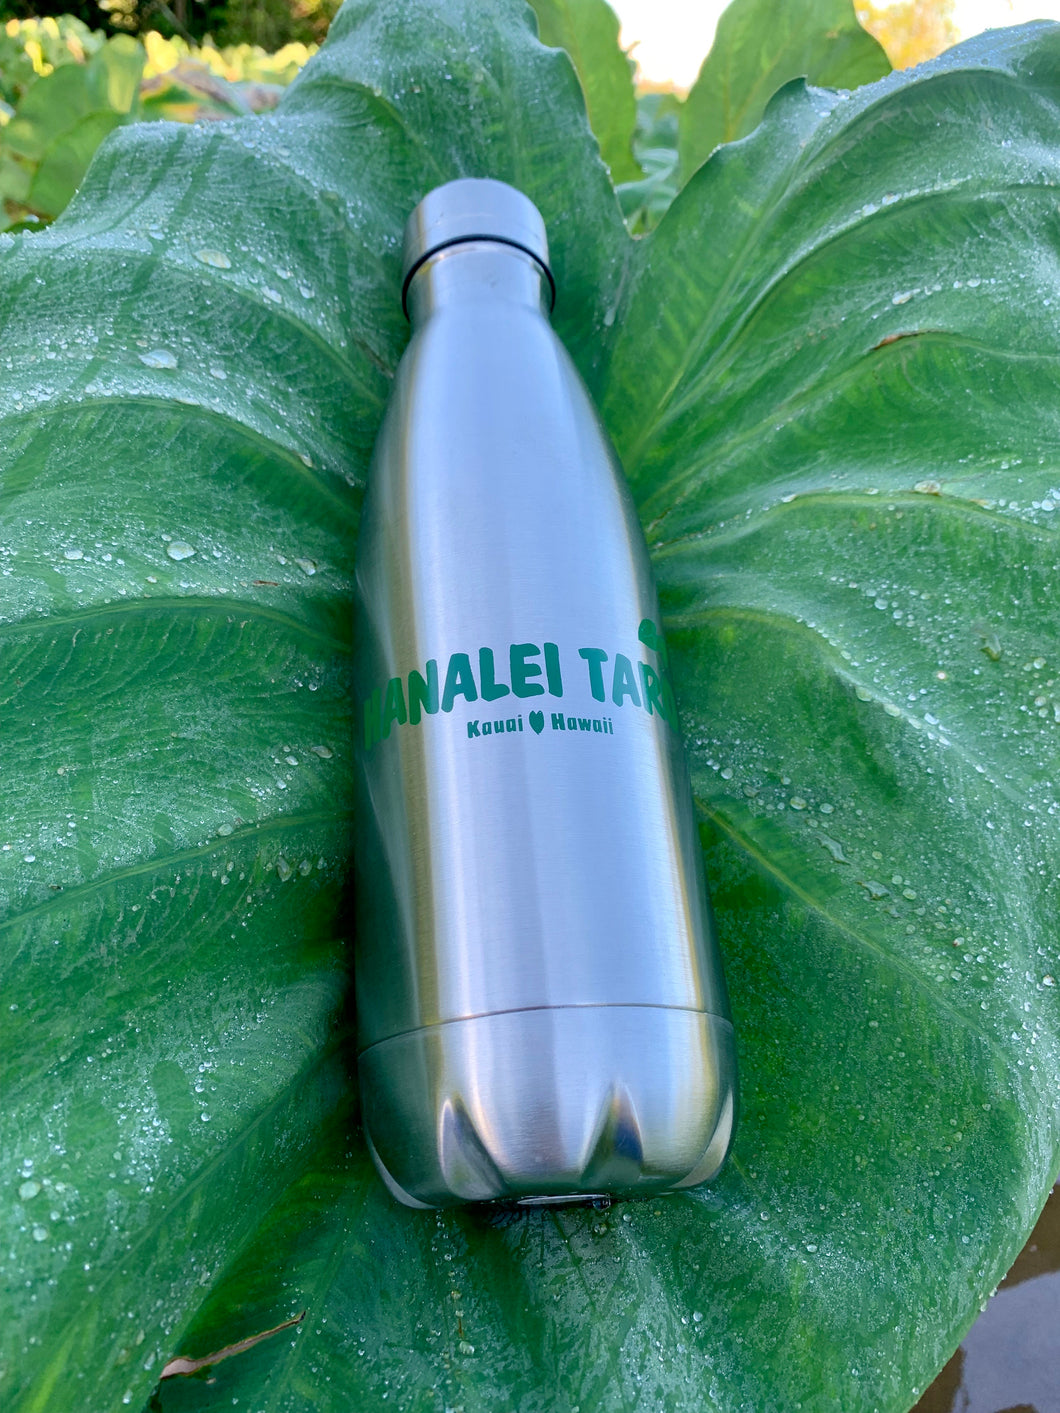 Hanalei Taro Insulated Bottle